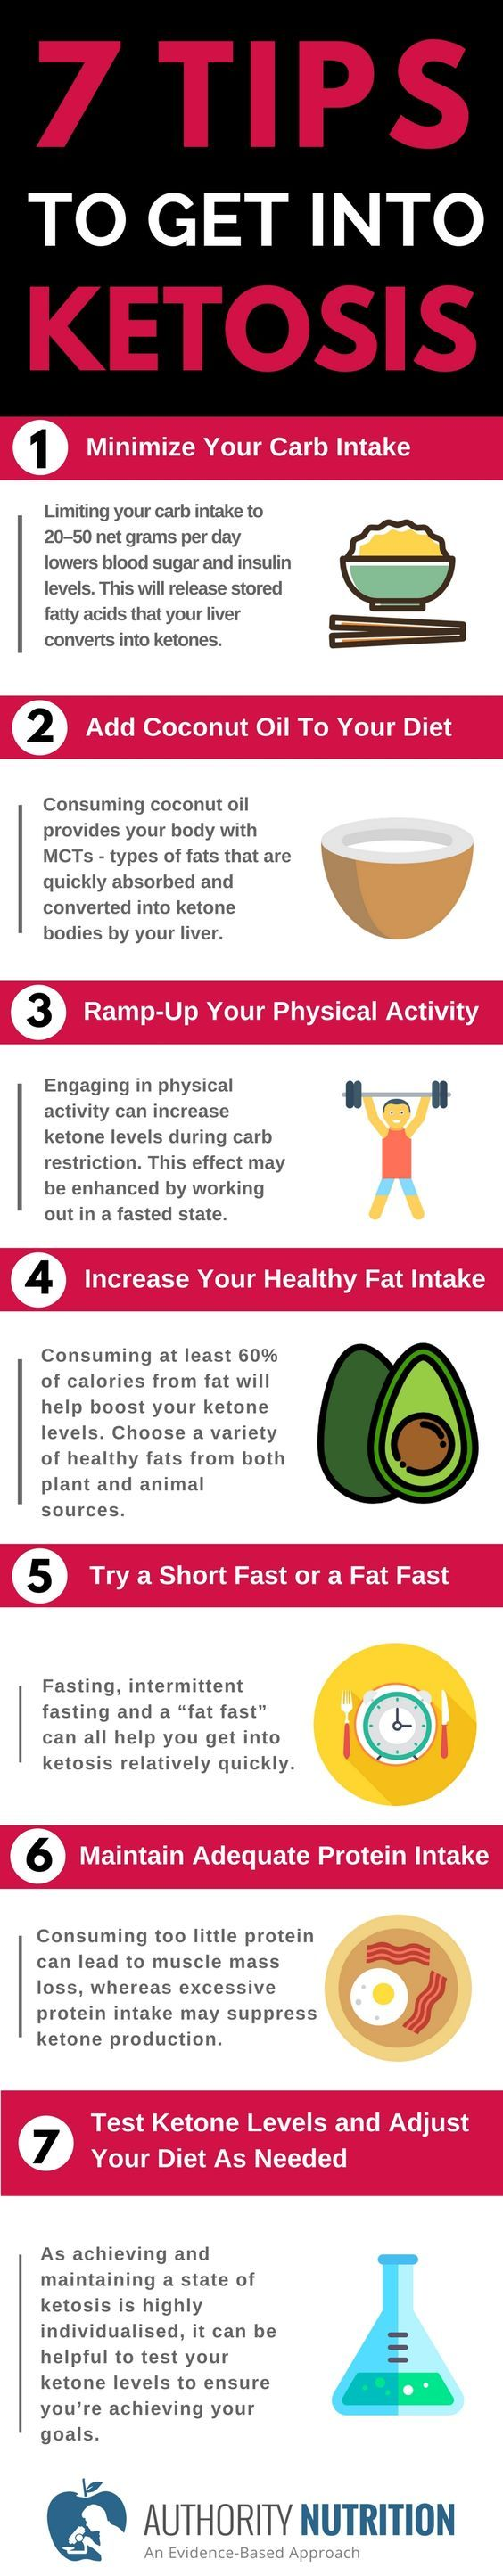 Ketogenic diets have many powerful health benefits, but some people have trouble getting into ketosis. Here are 7 effective tips to get into ketosis: https://authoritynutrition.com/7-tips-to-get-into-ketosis/